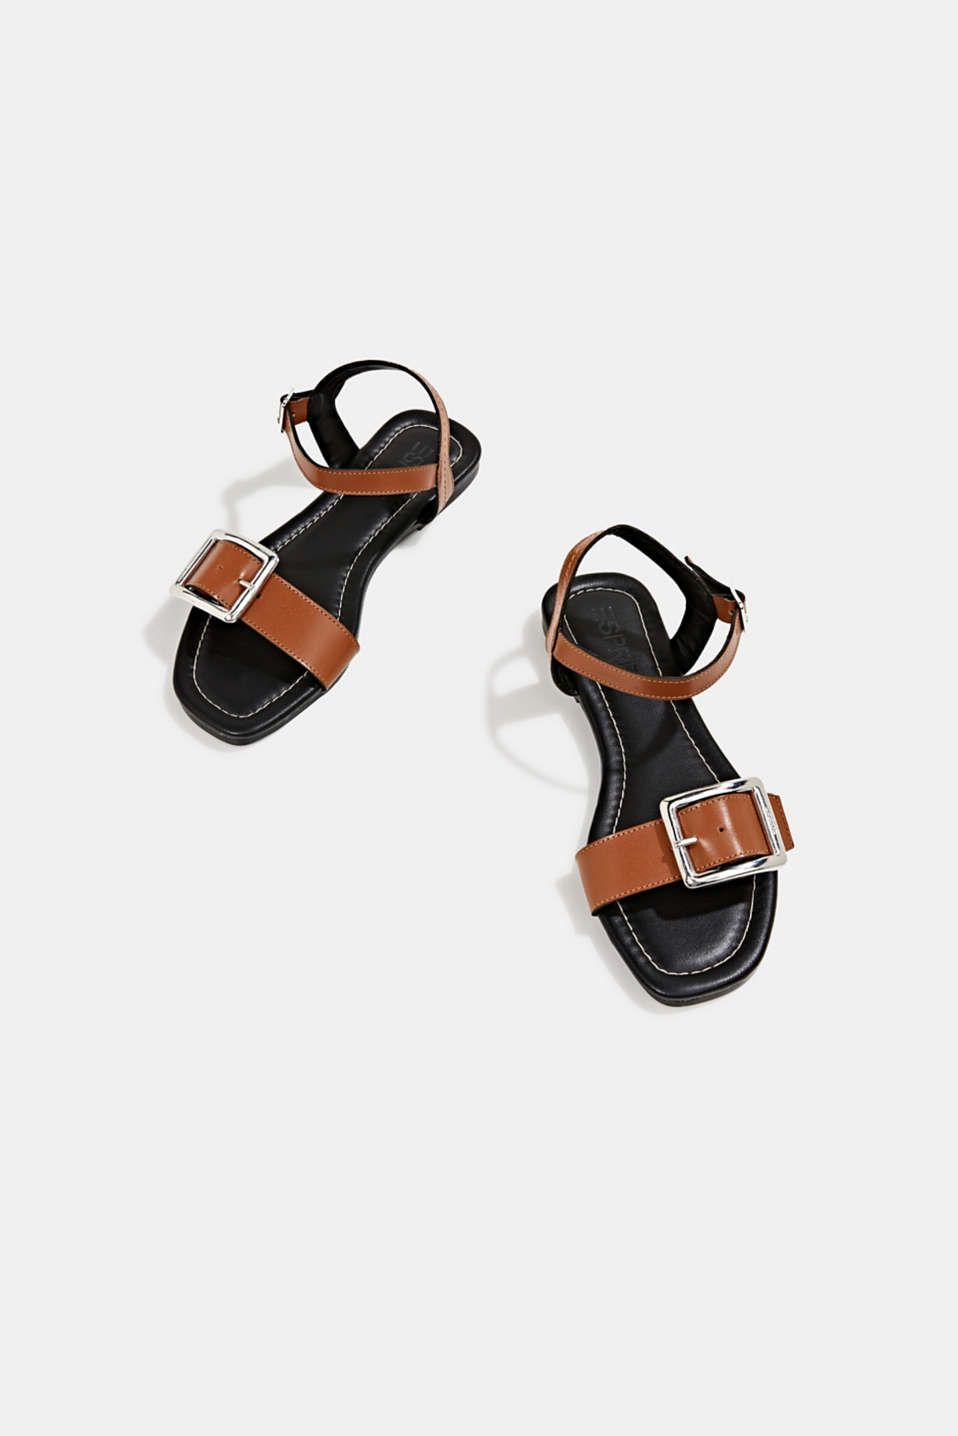 Leather sandals with buckles, CARAMEL, detail image number 6